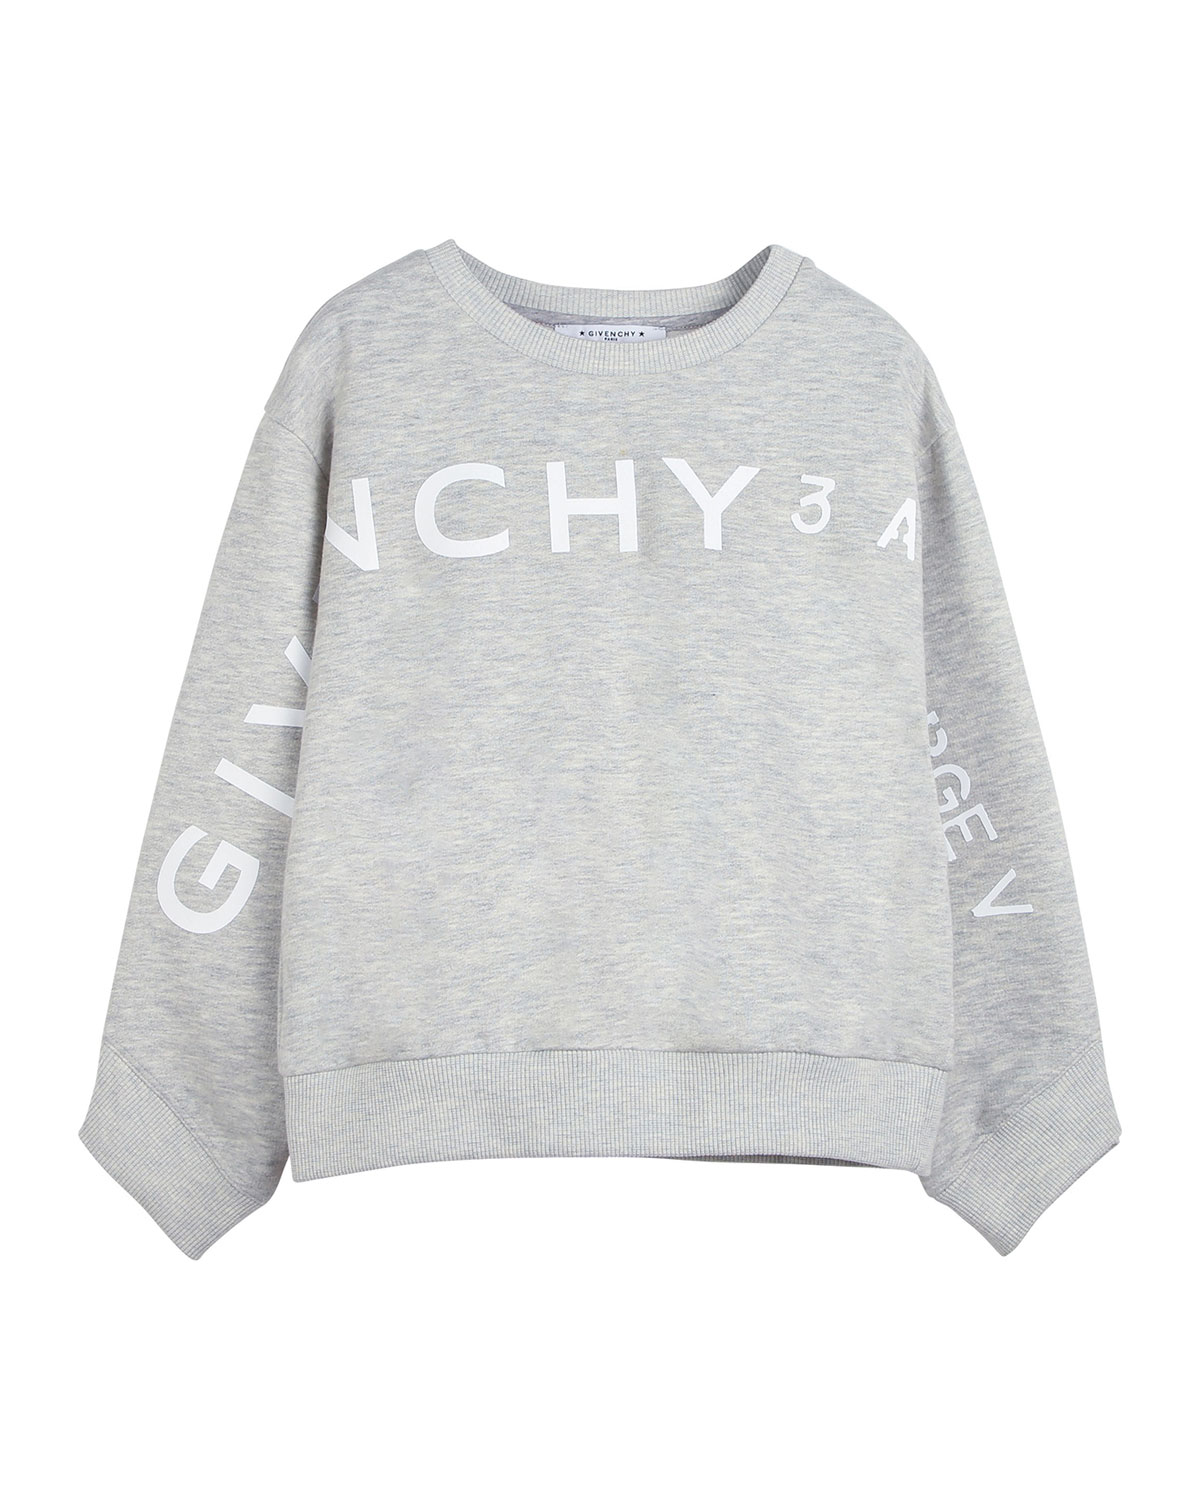 Givenchy Girl's Logo Address Heathered Sweatshirt, Size 12-14